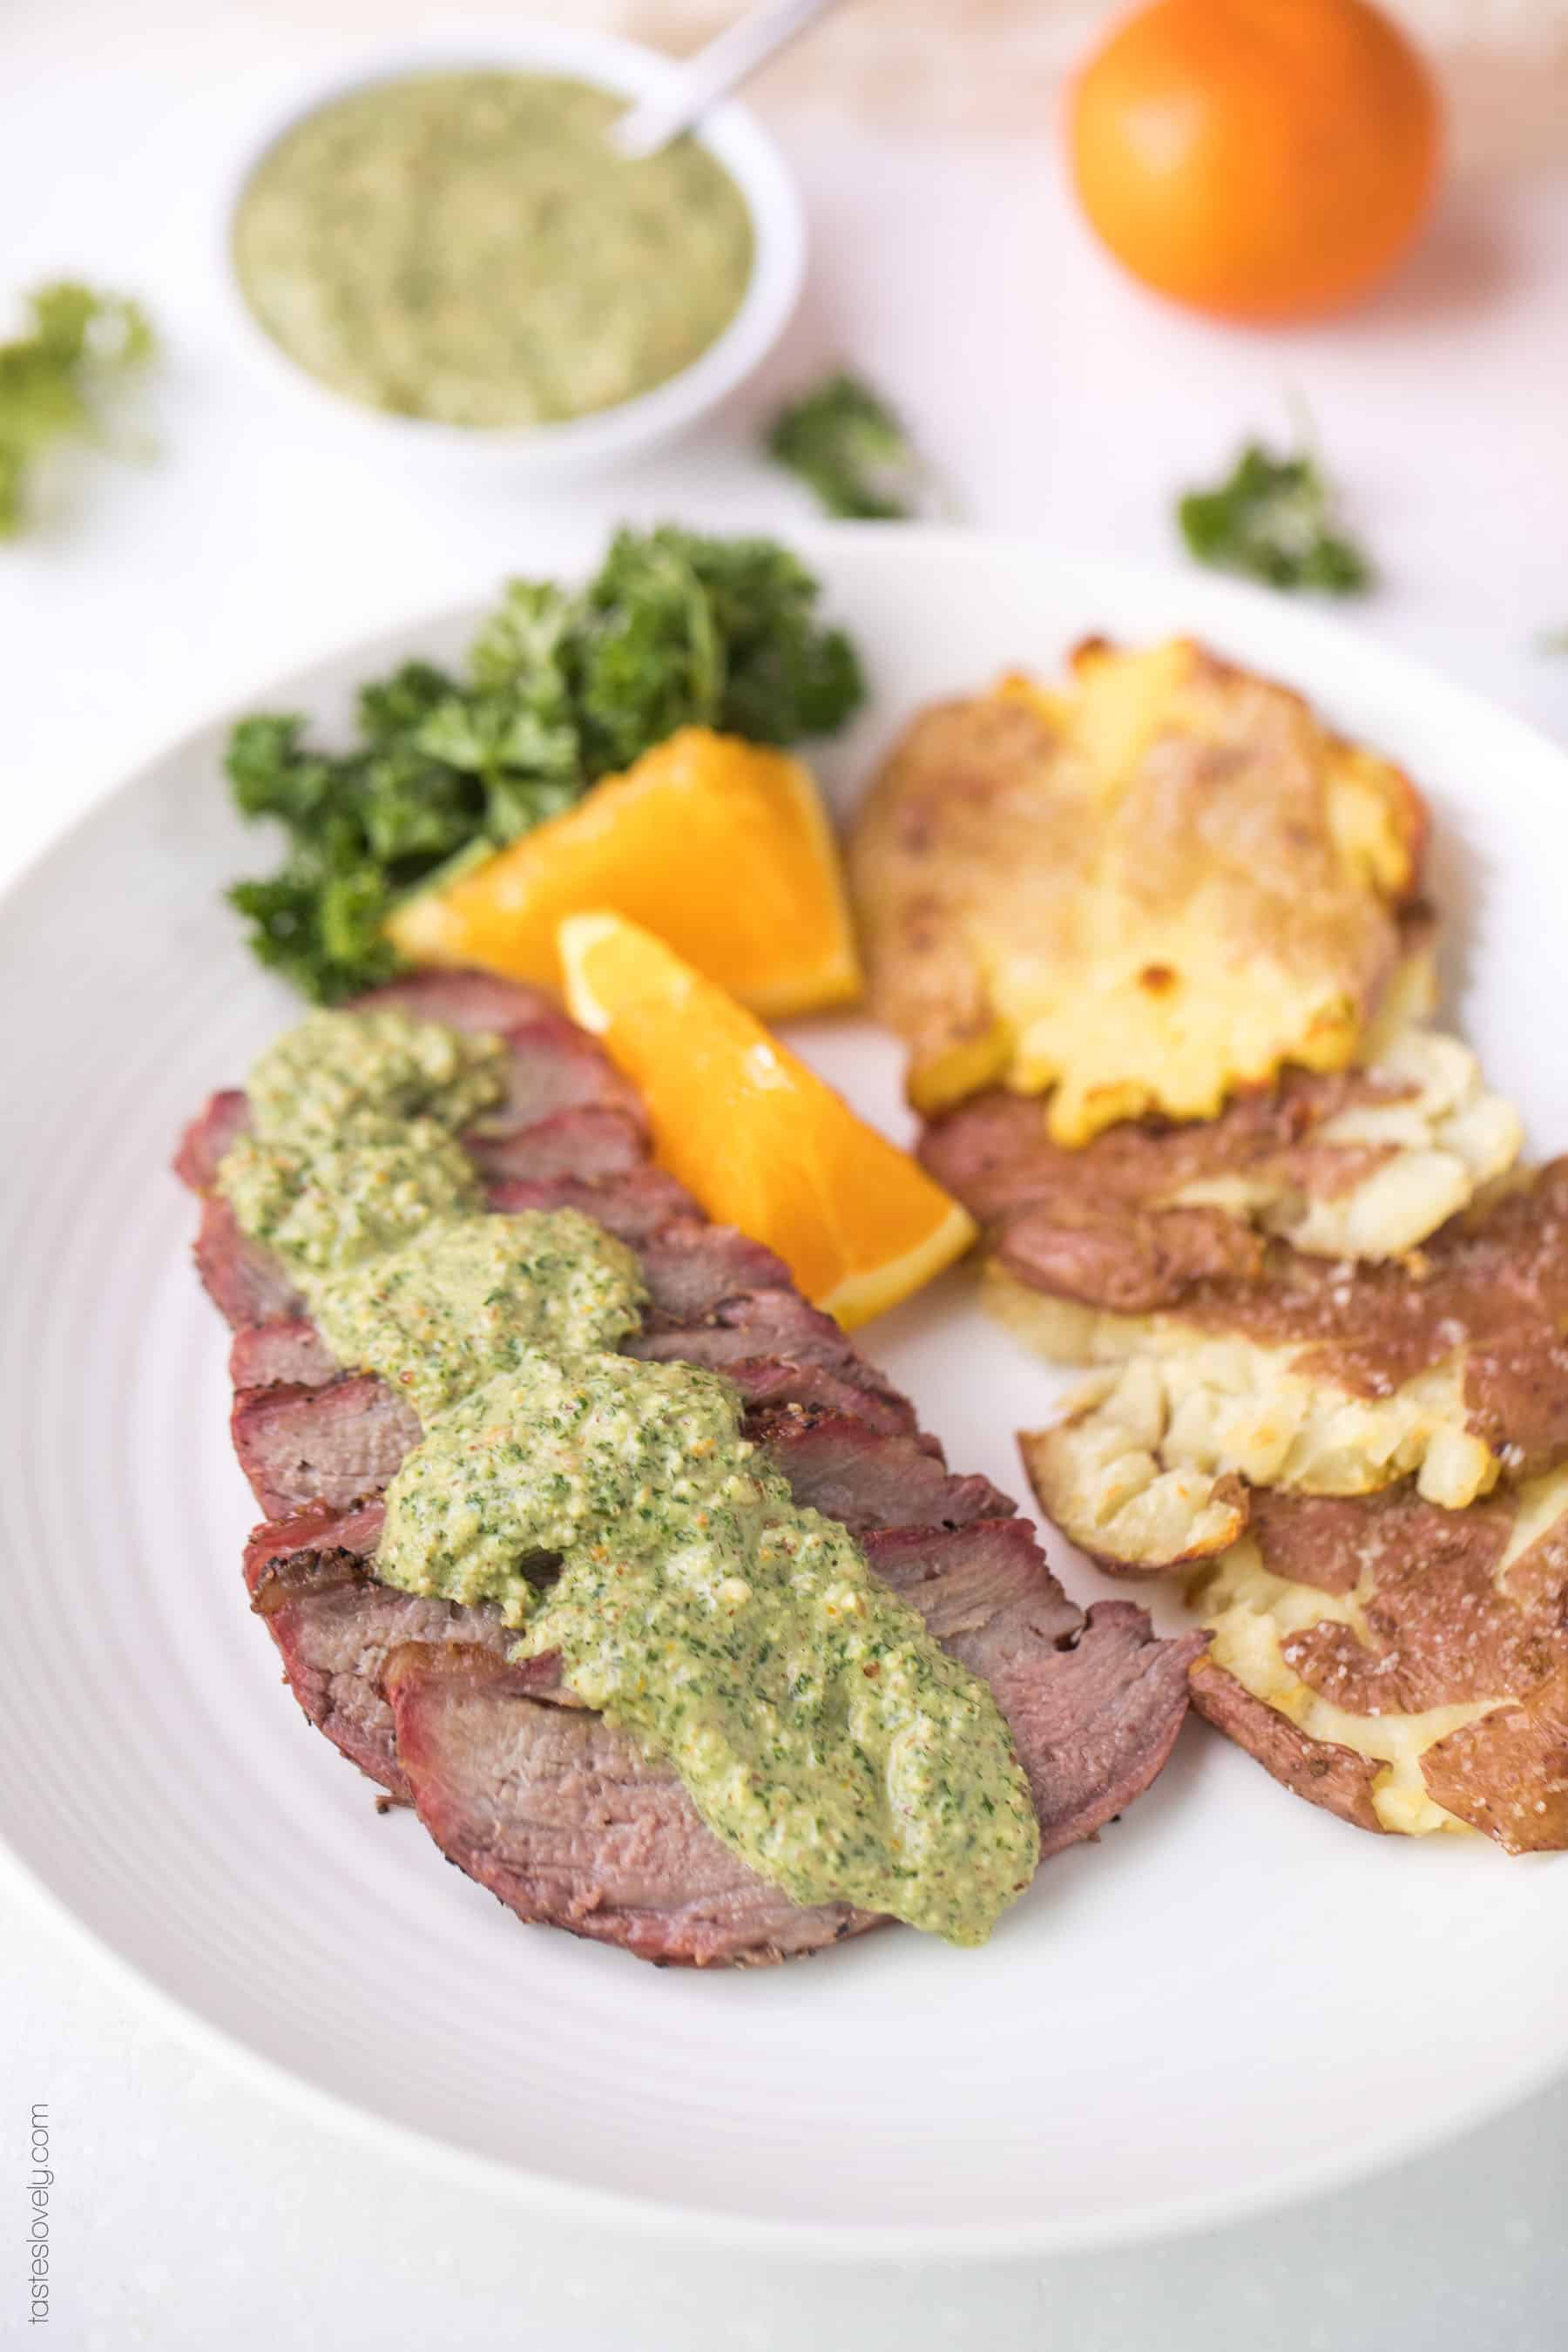 Paleo + Whole30 Tri Tip with Orange Parsley Sauce Recipe - a 30 minute summer grilling recipe. Gluten free, grain free, dairy free, sugar free, keto, clean eating, real food.